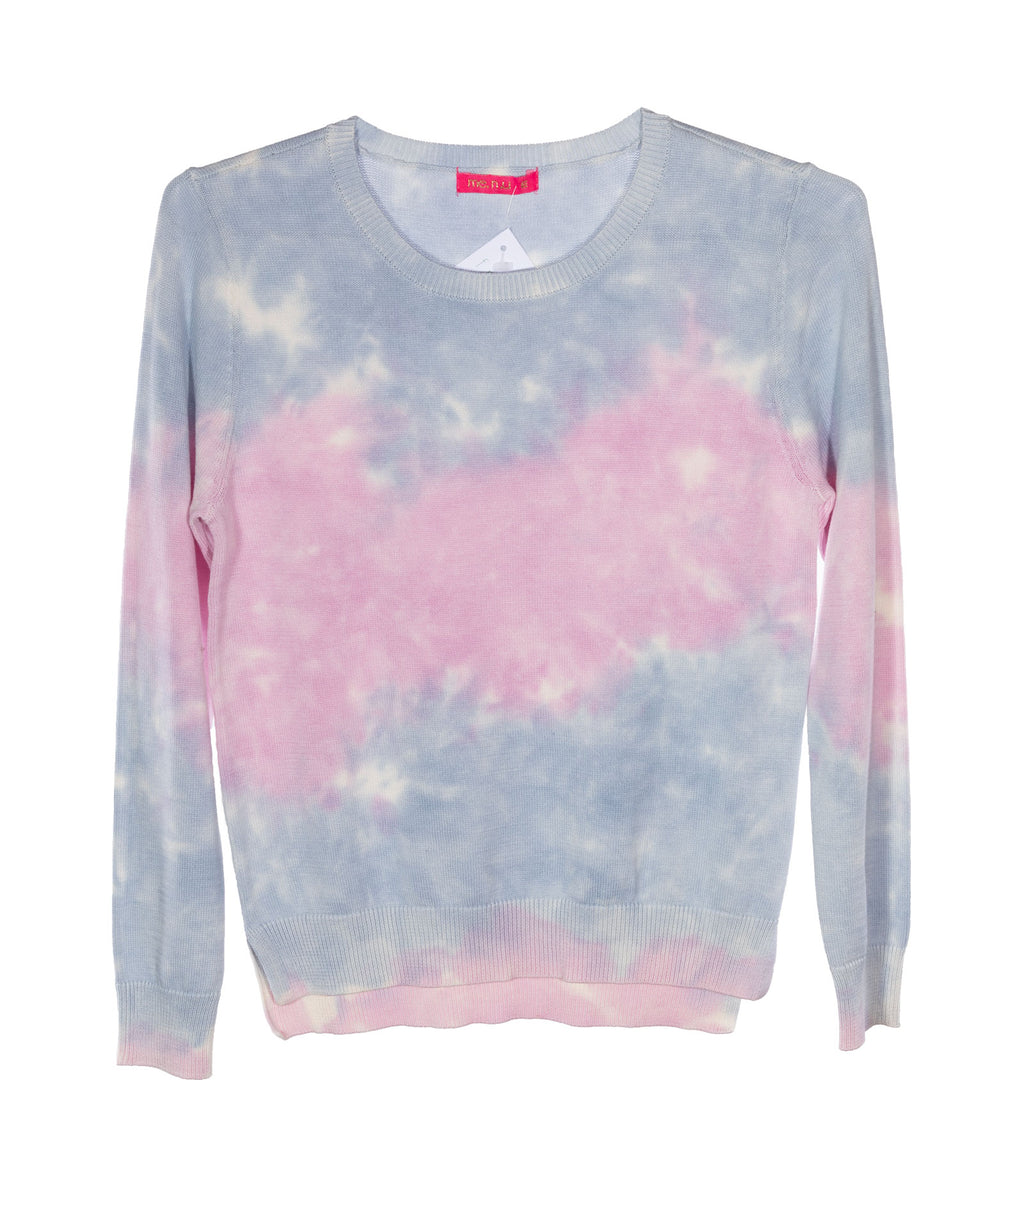 Me.n.u. Girls Tie Dye Sweater